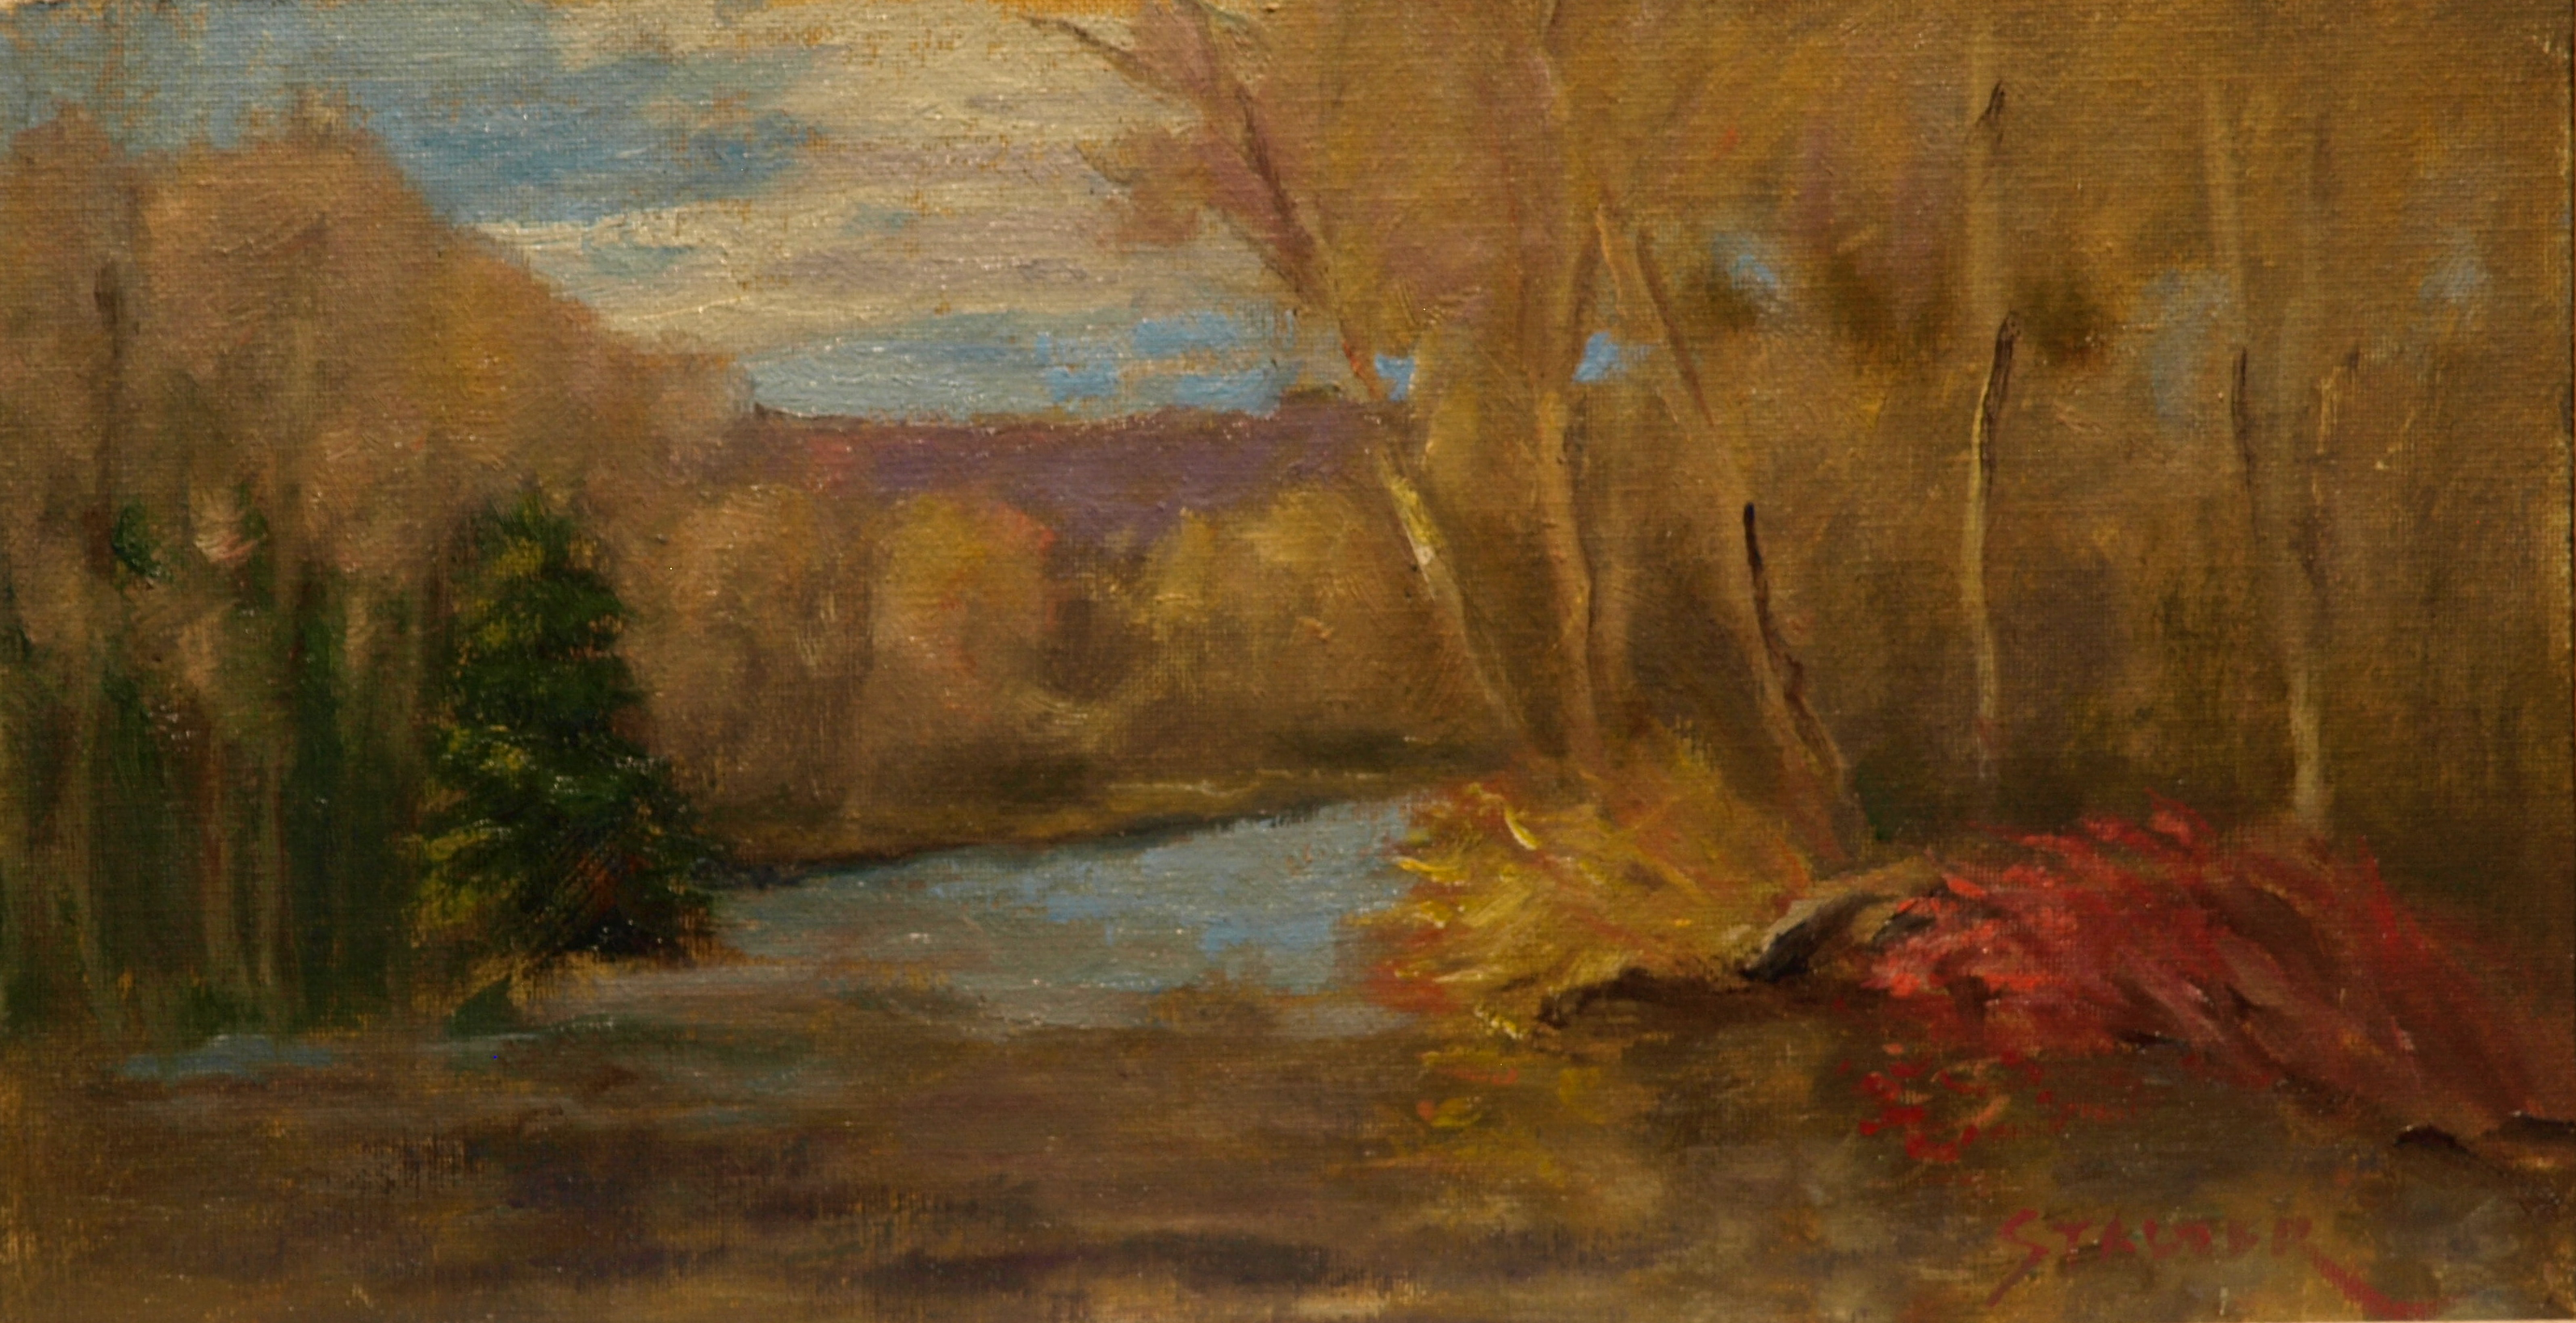 Red and Yellow Bushes, Oil on Canvas on Panel, 8 x 14 Inches, by Richard Stalter, $225